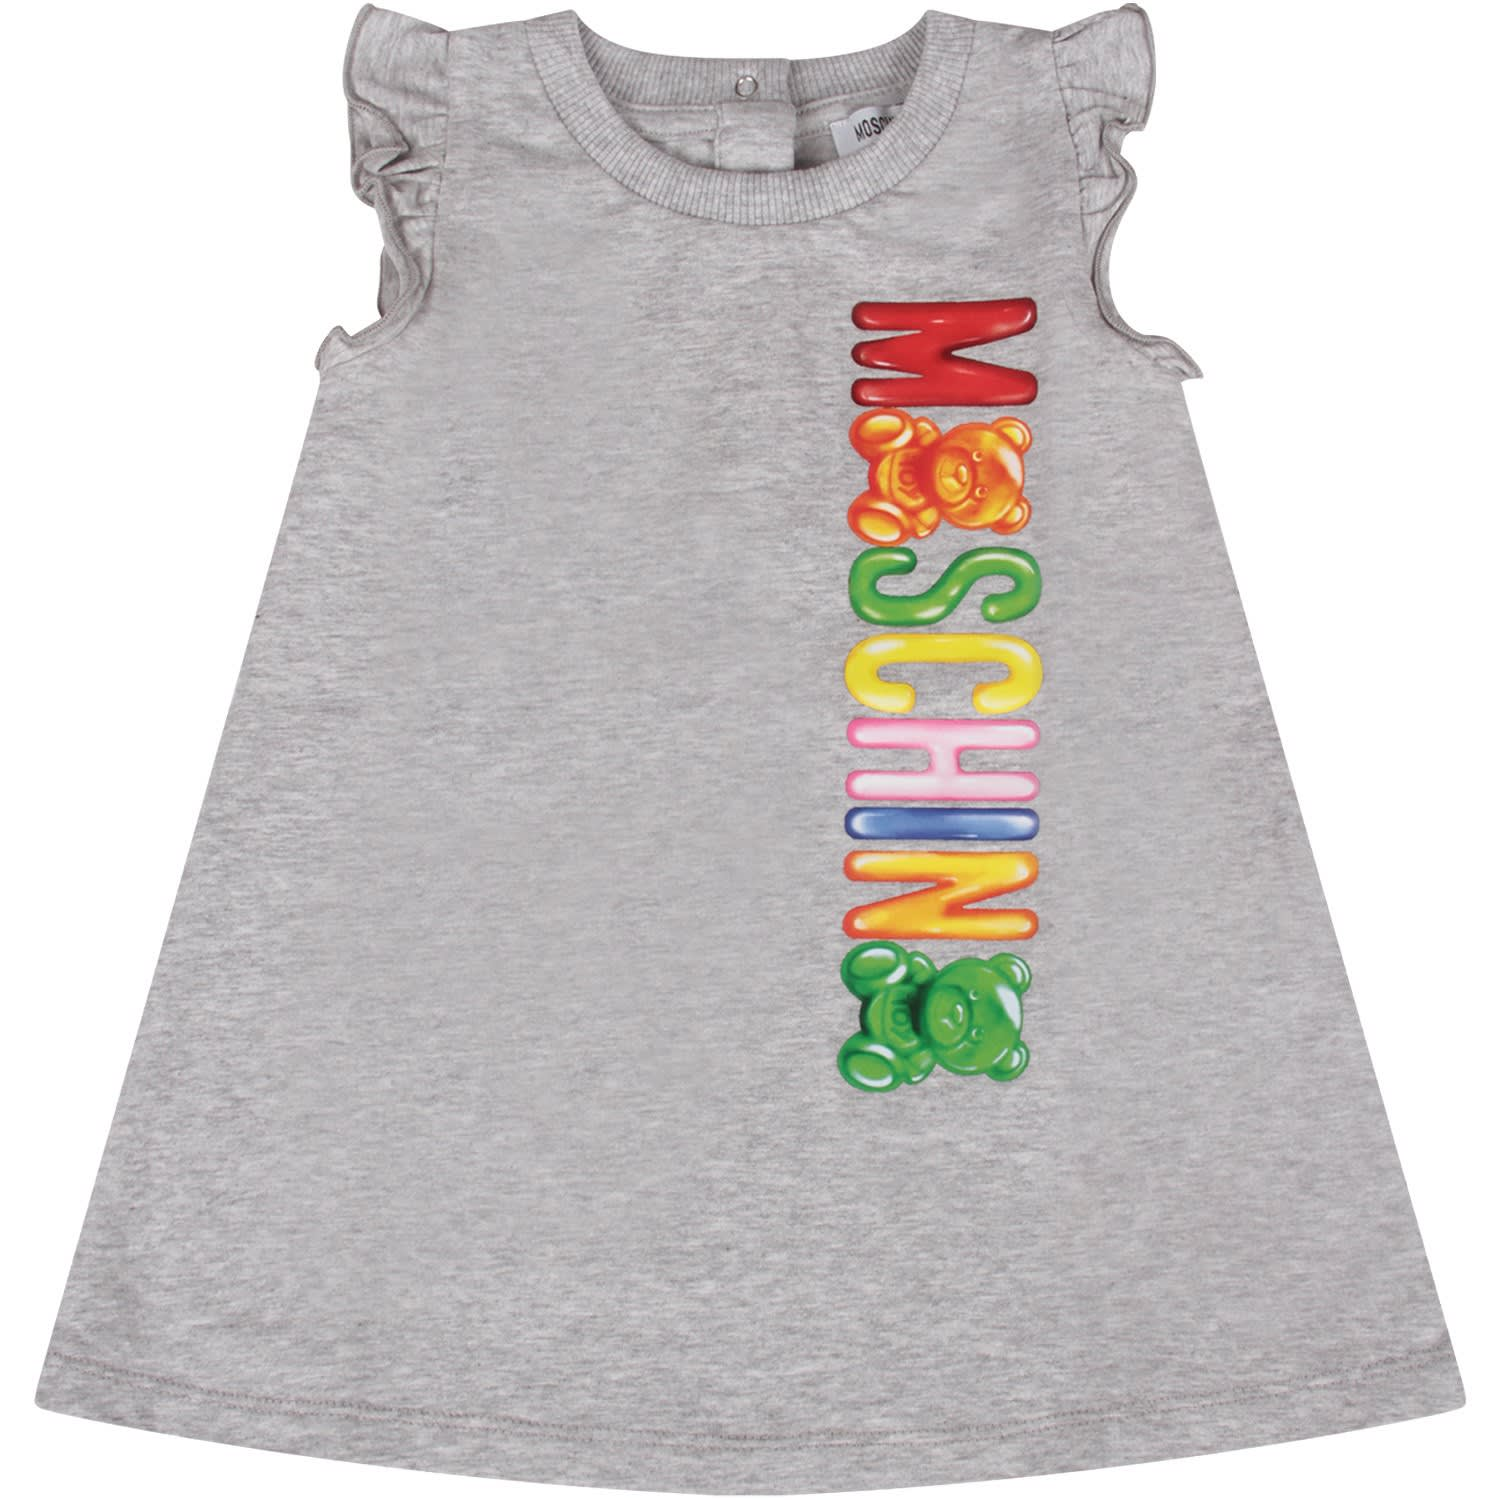 Moschino Grey Babygirl Dress With Colorful Logo And Teddy Bears